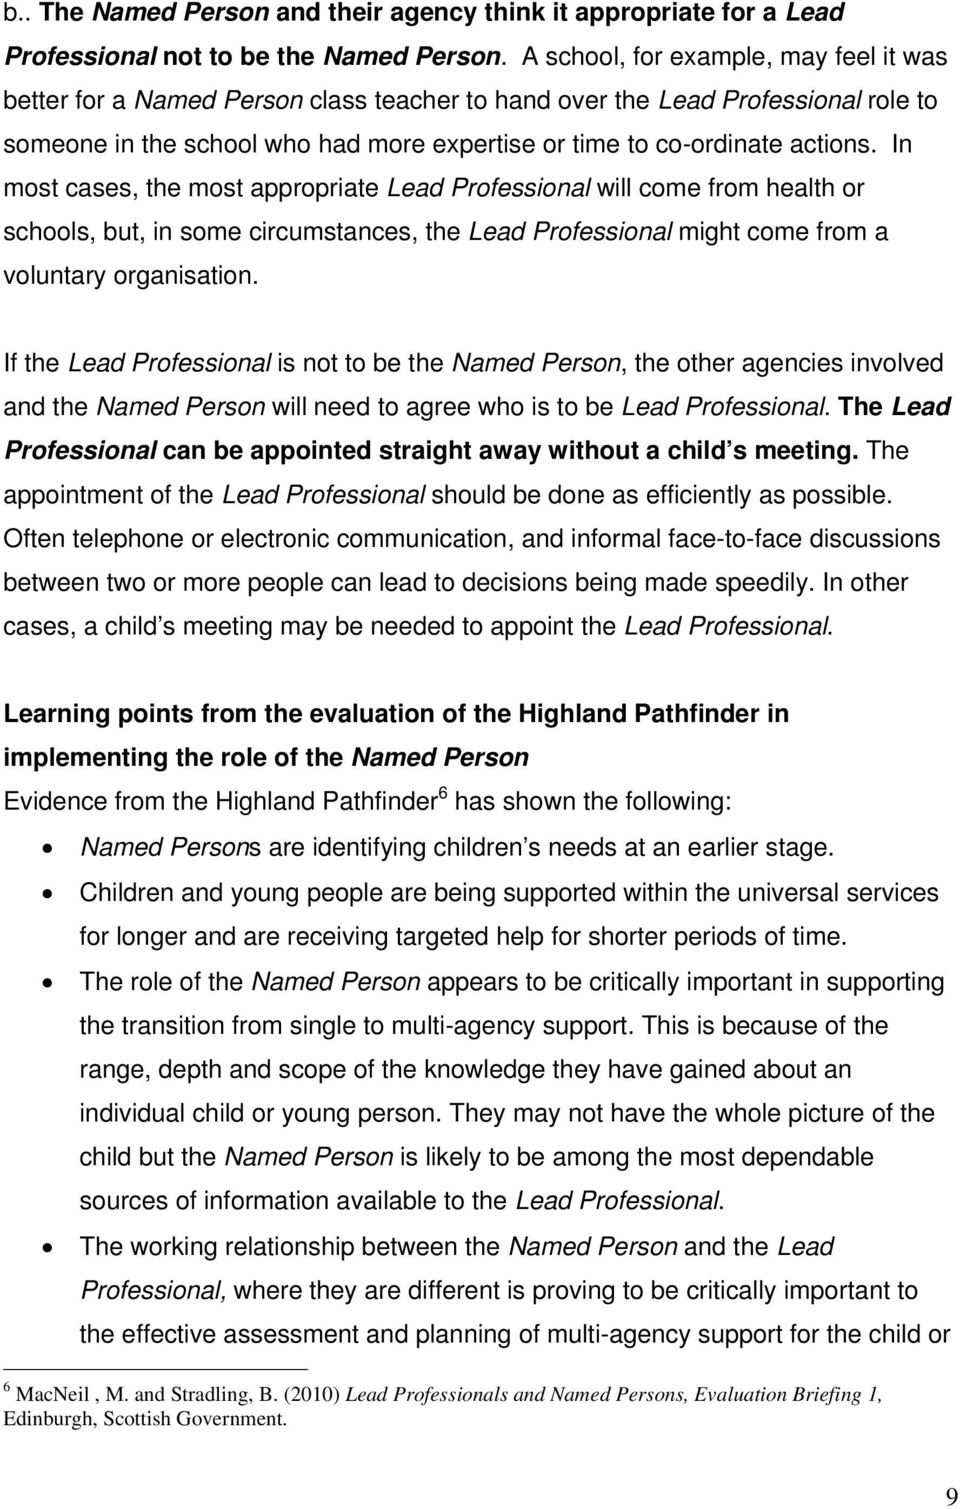 In most cases, the most appropriate Lead Professional will come from health or schools, but, in some circumstances, the Lead Professional might come from a voluntary organisation.